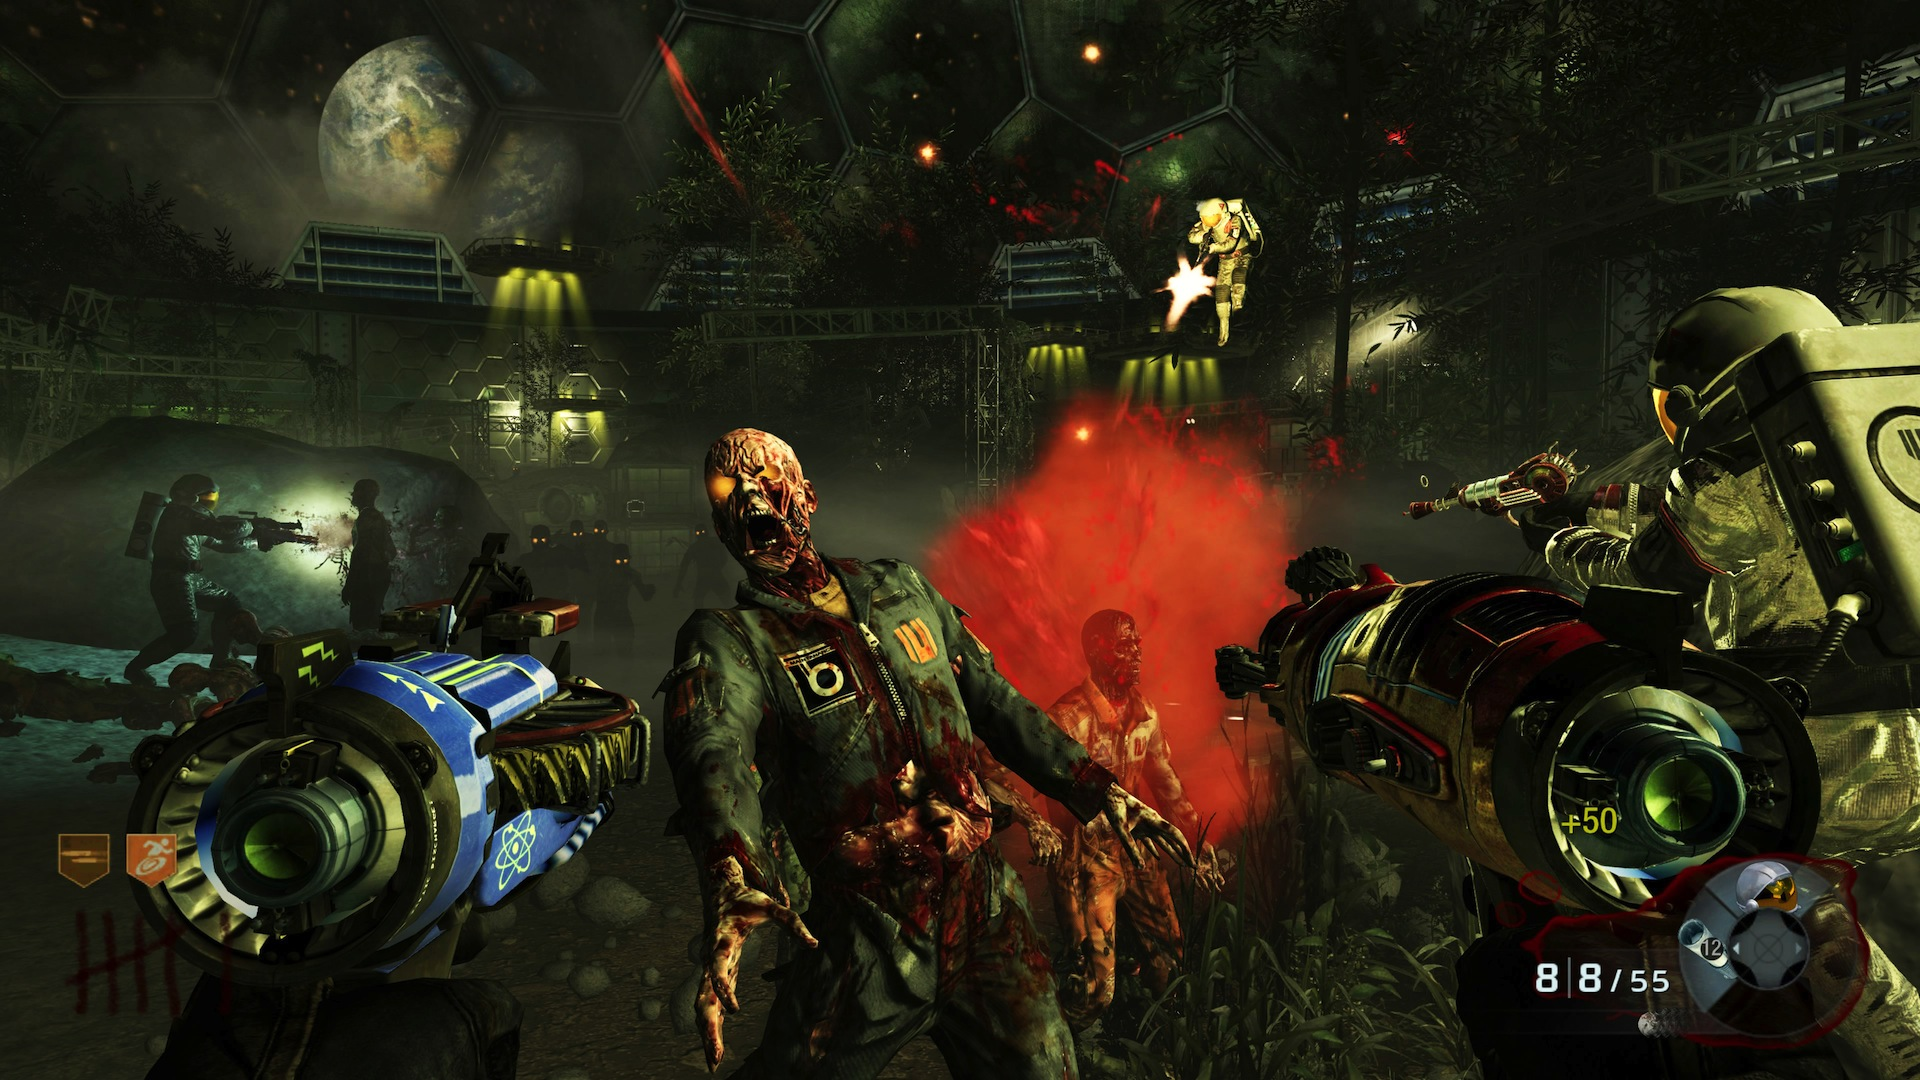 ocean of apk call of duty zombies